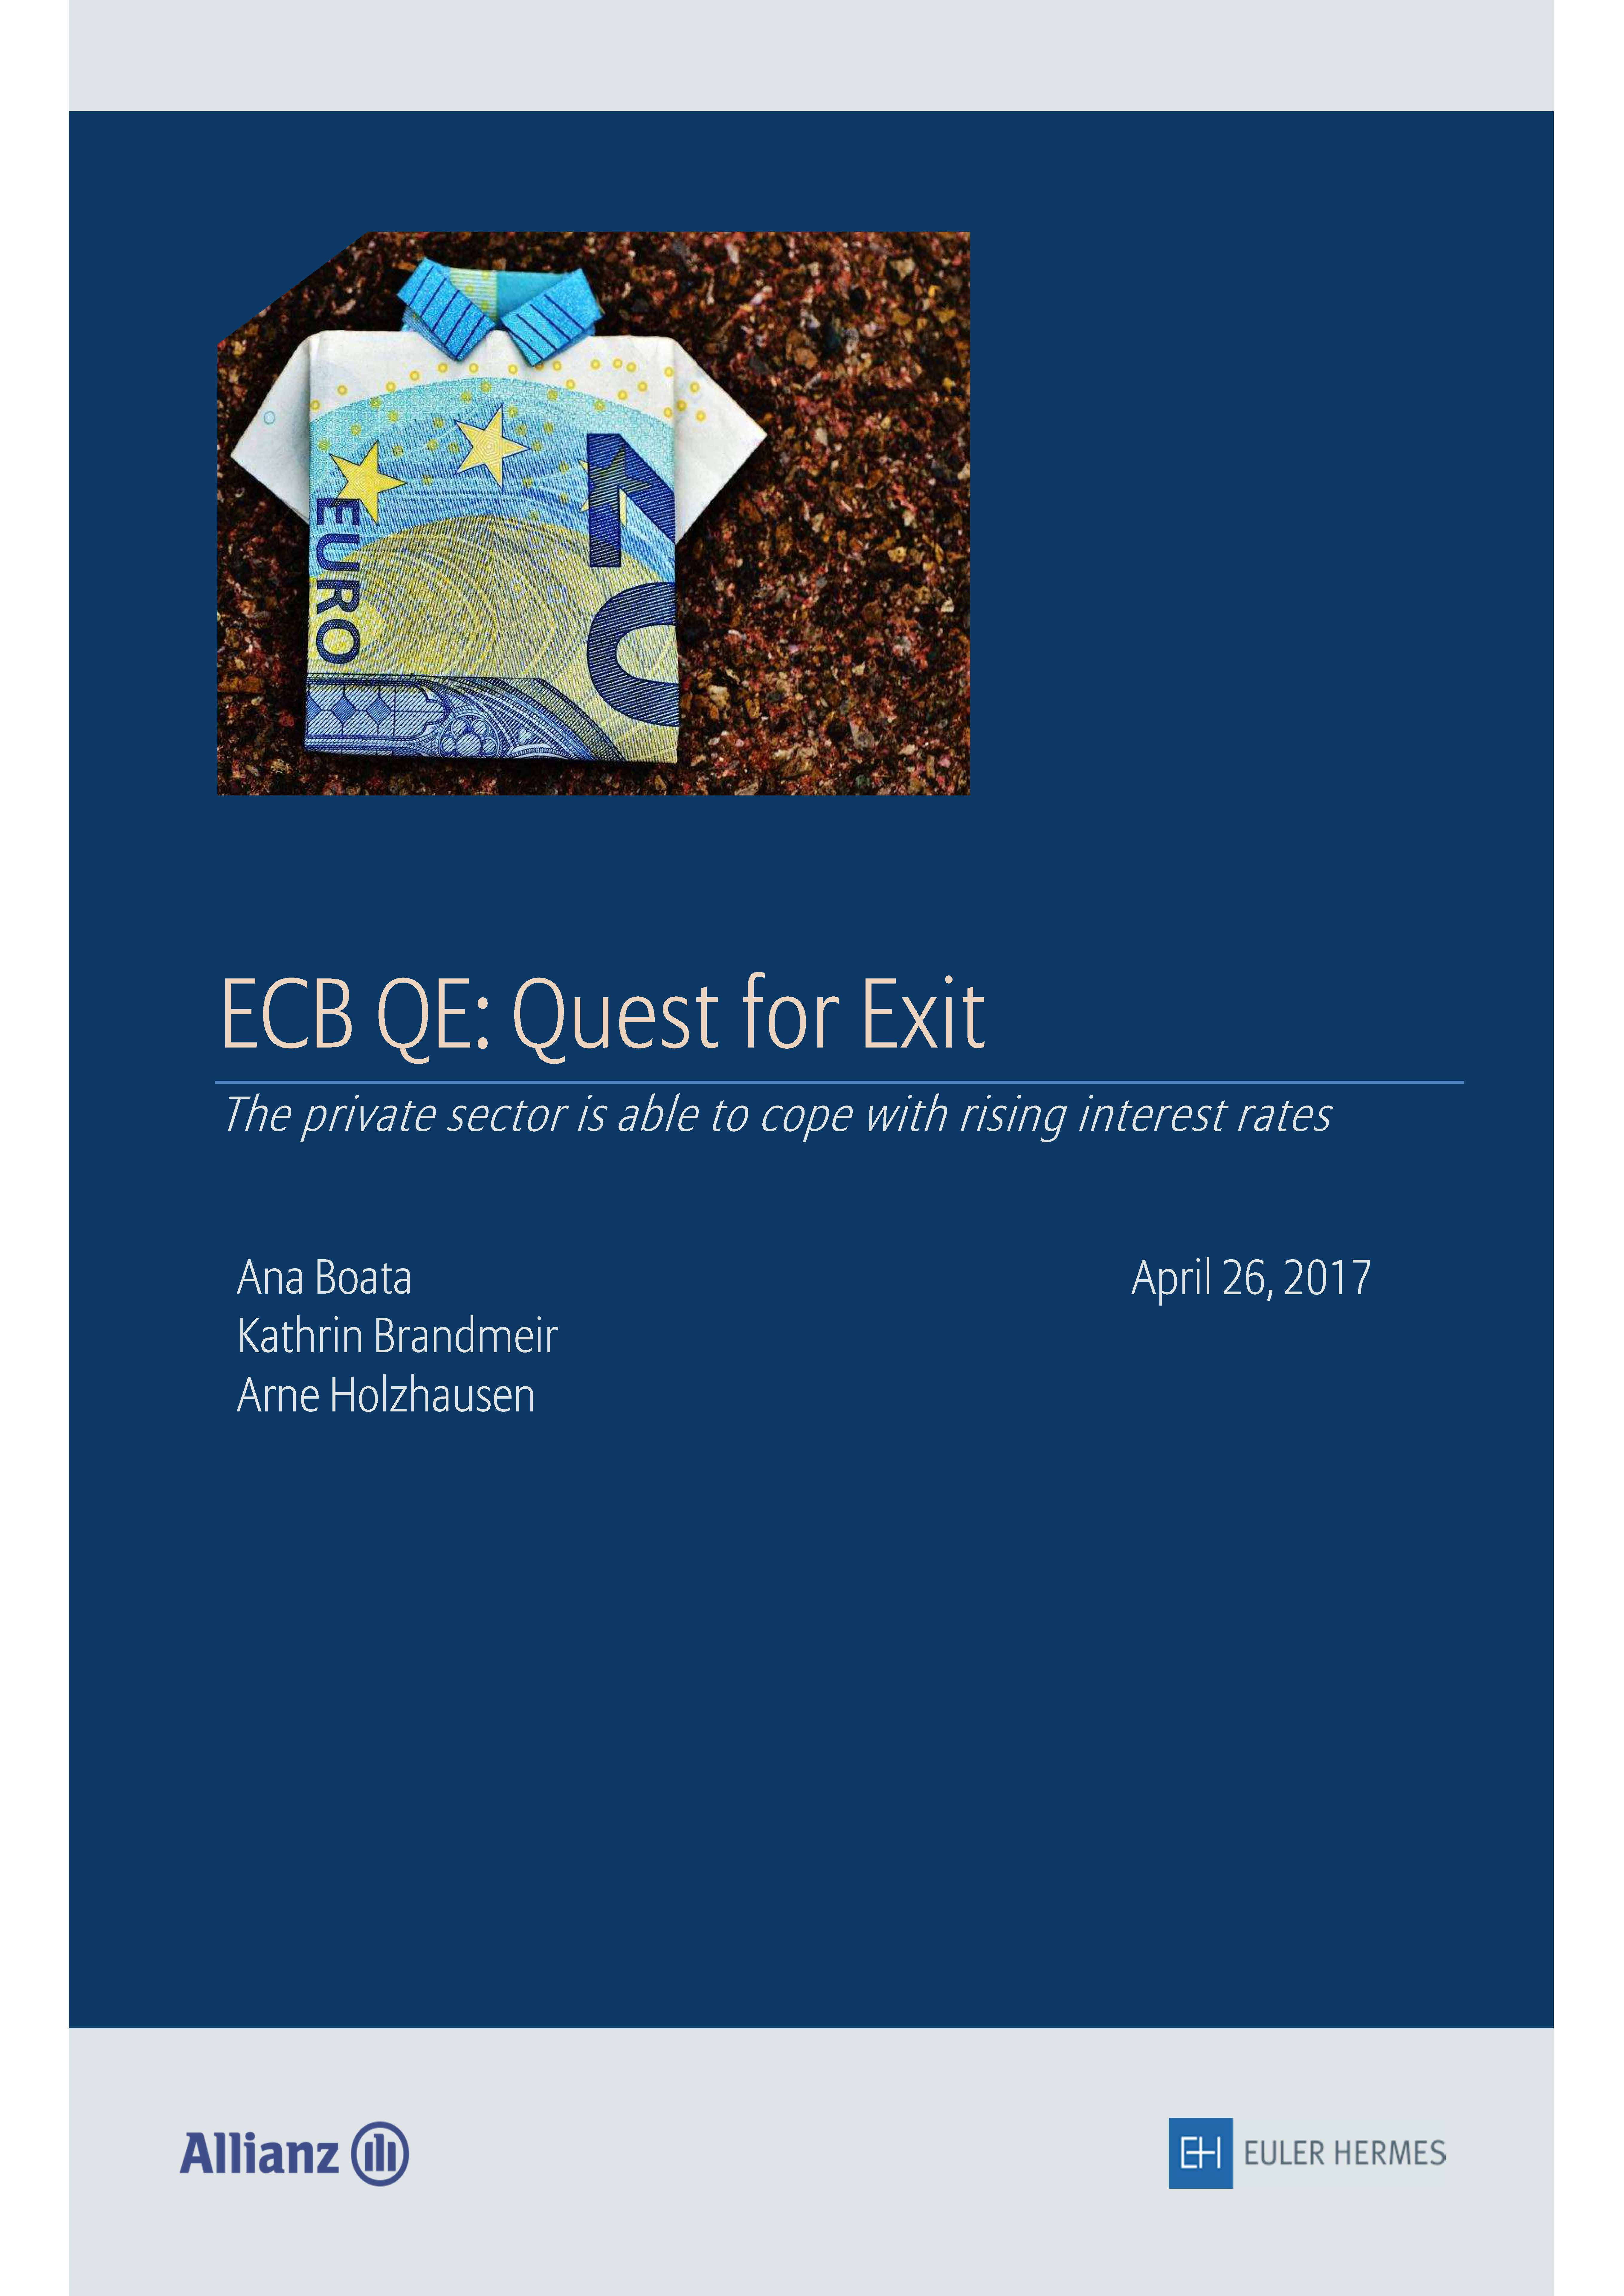 ECB QE: Quest for Exit